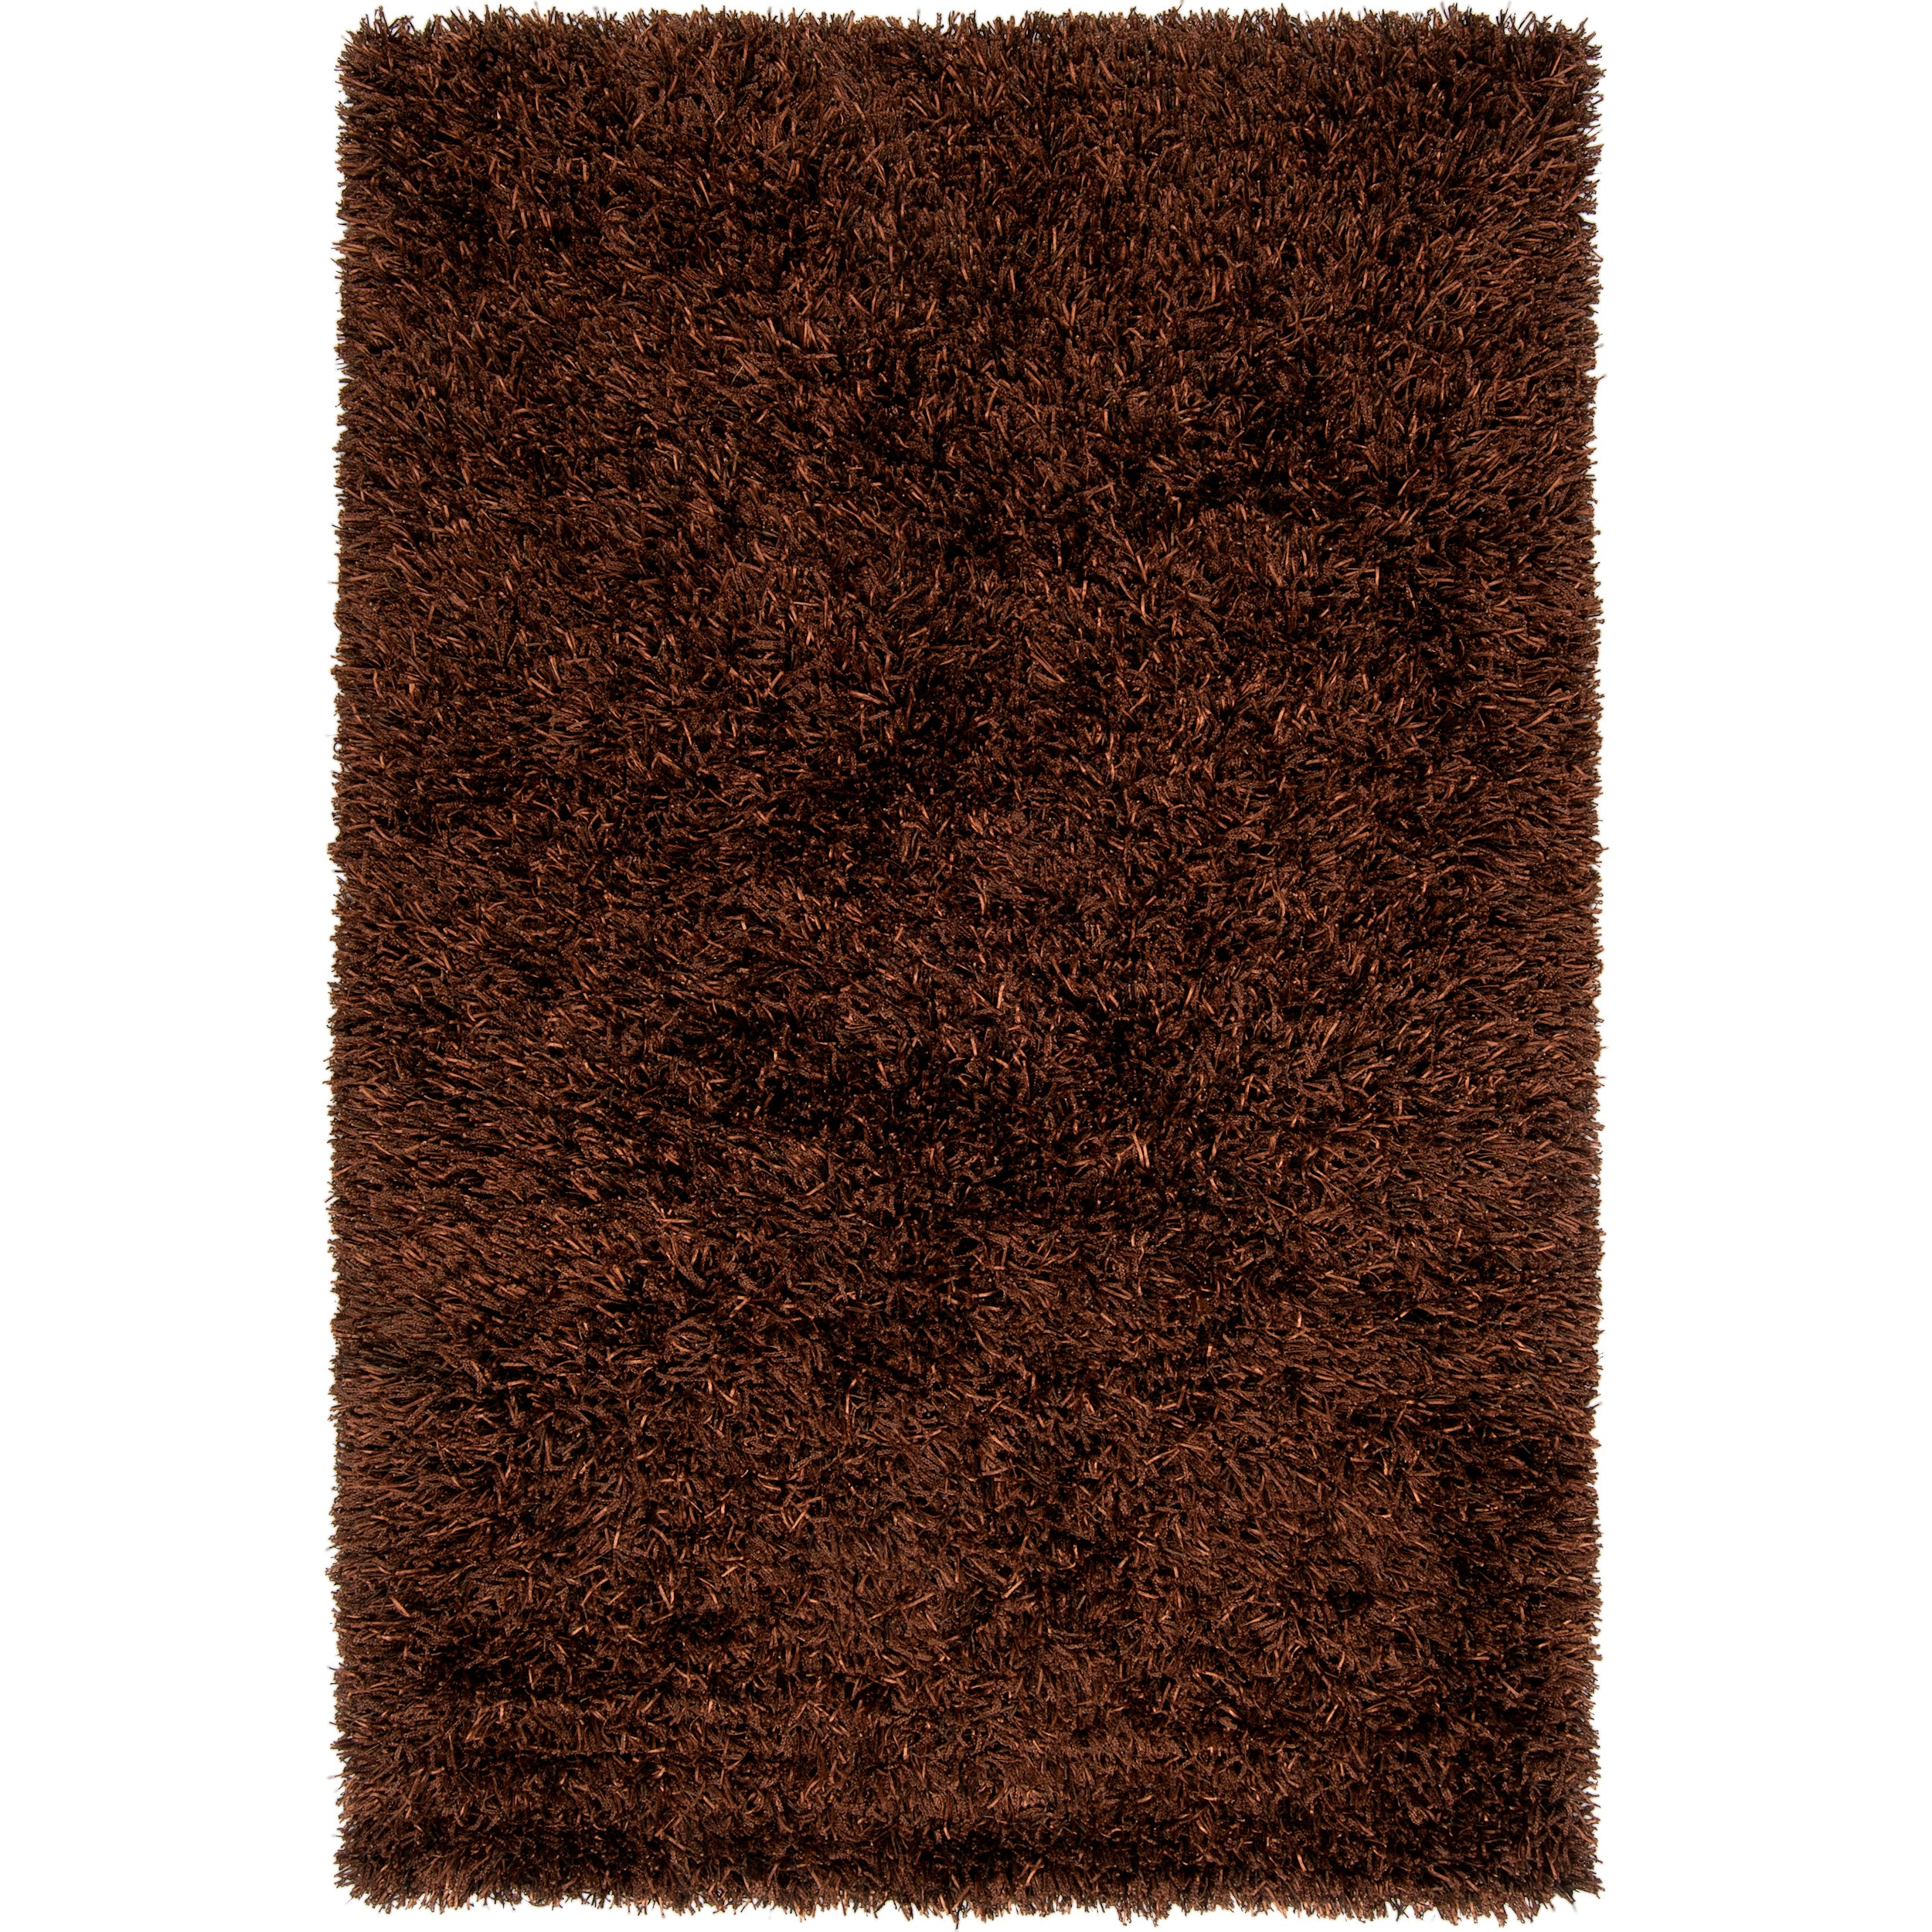 Handwoven Brown Woodford Ultra-Plush Polyester Shag Rug (5' x 8')